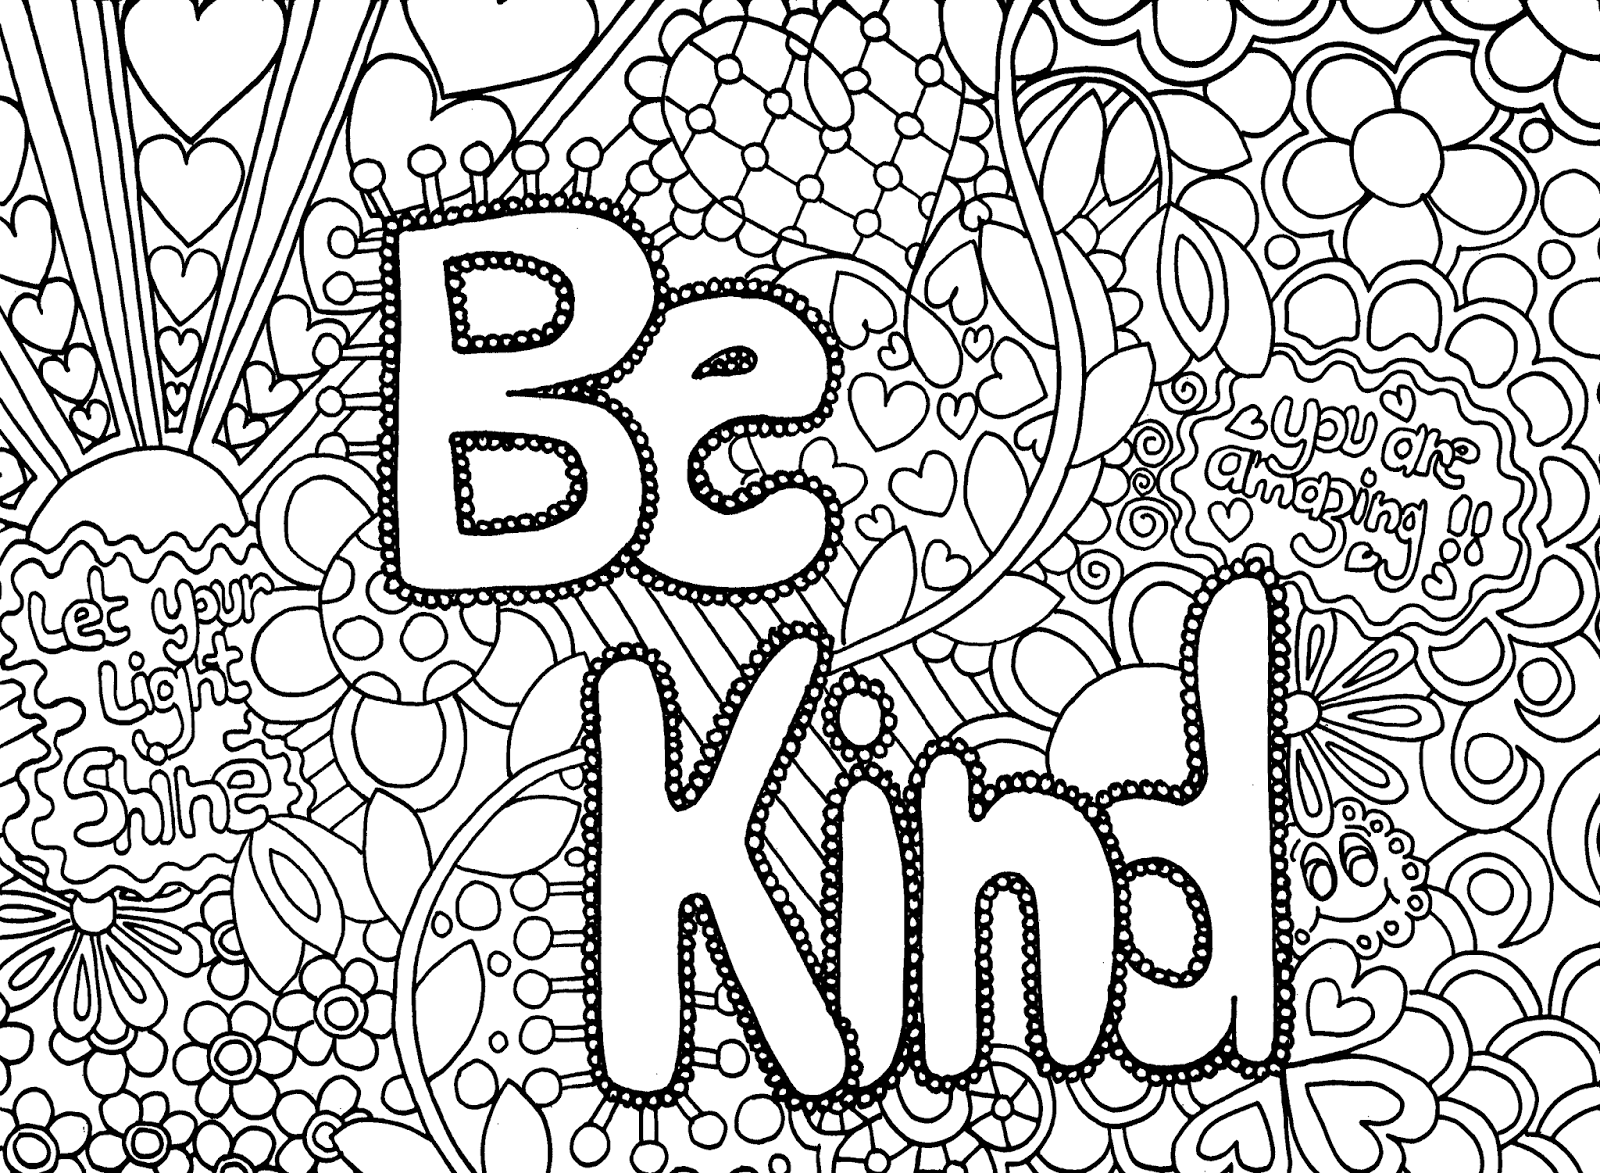 Printable coloring pages with words - Adult Printable Art Coloring Pages Coloring Panda